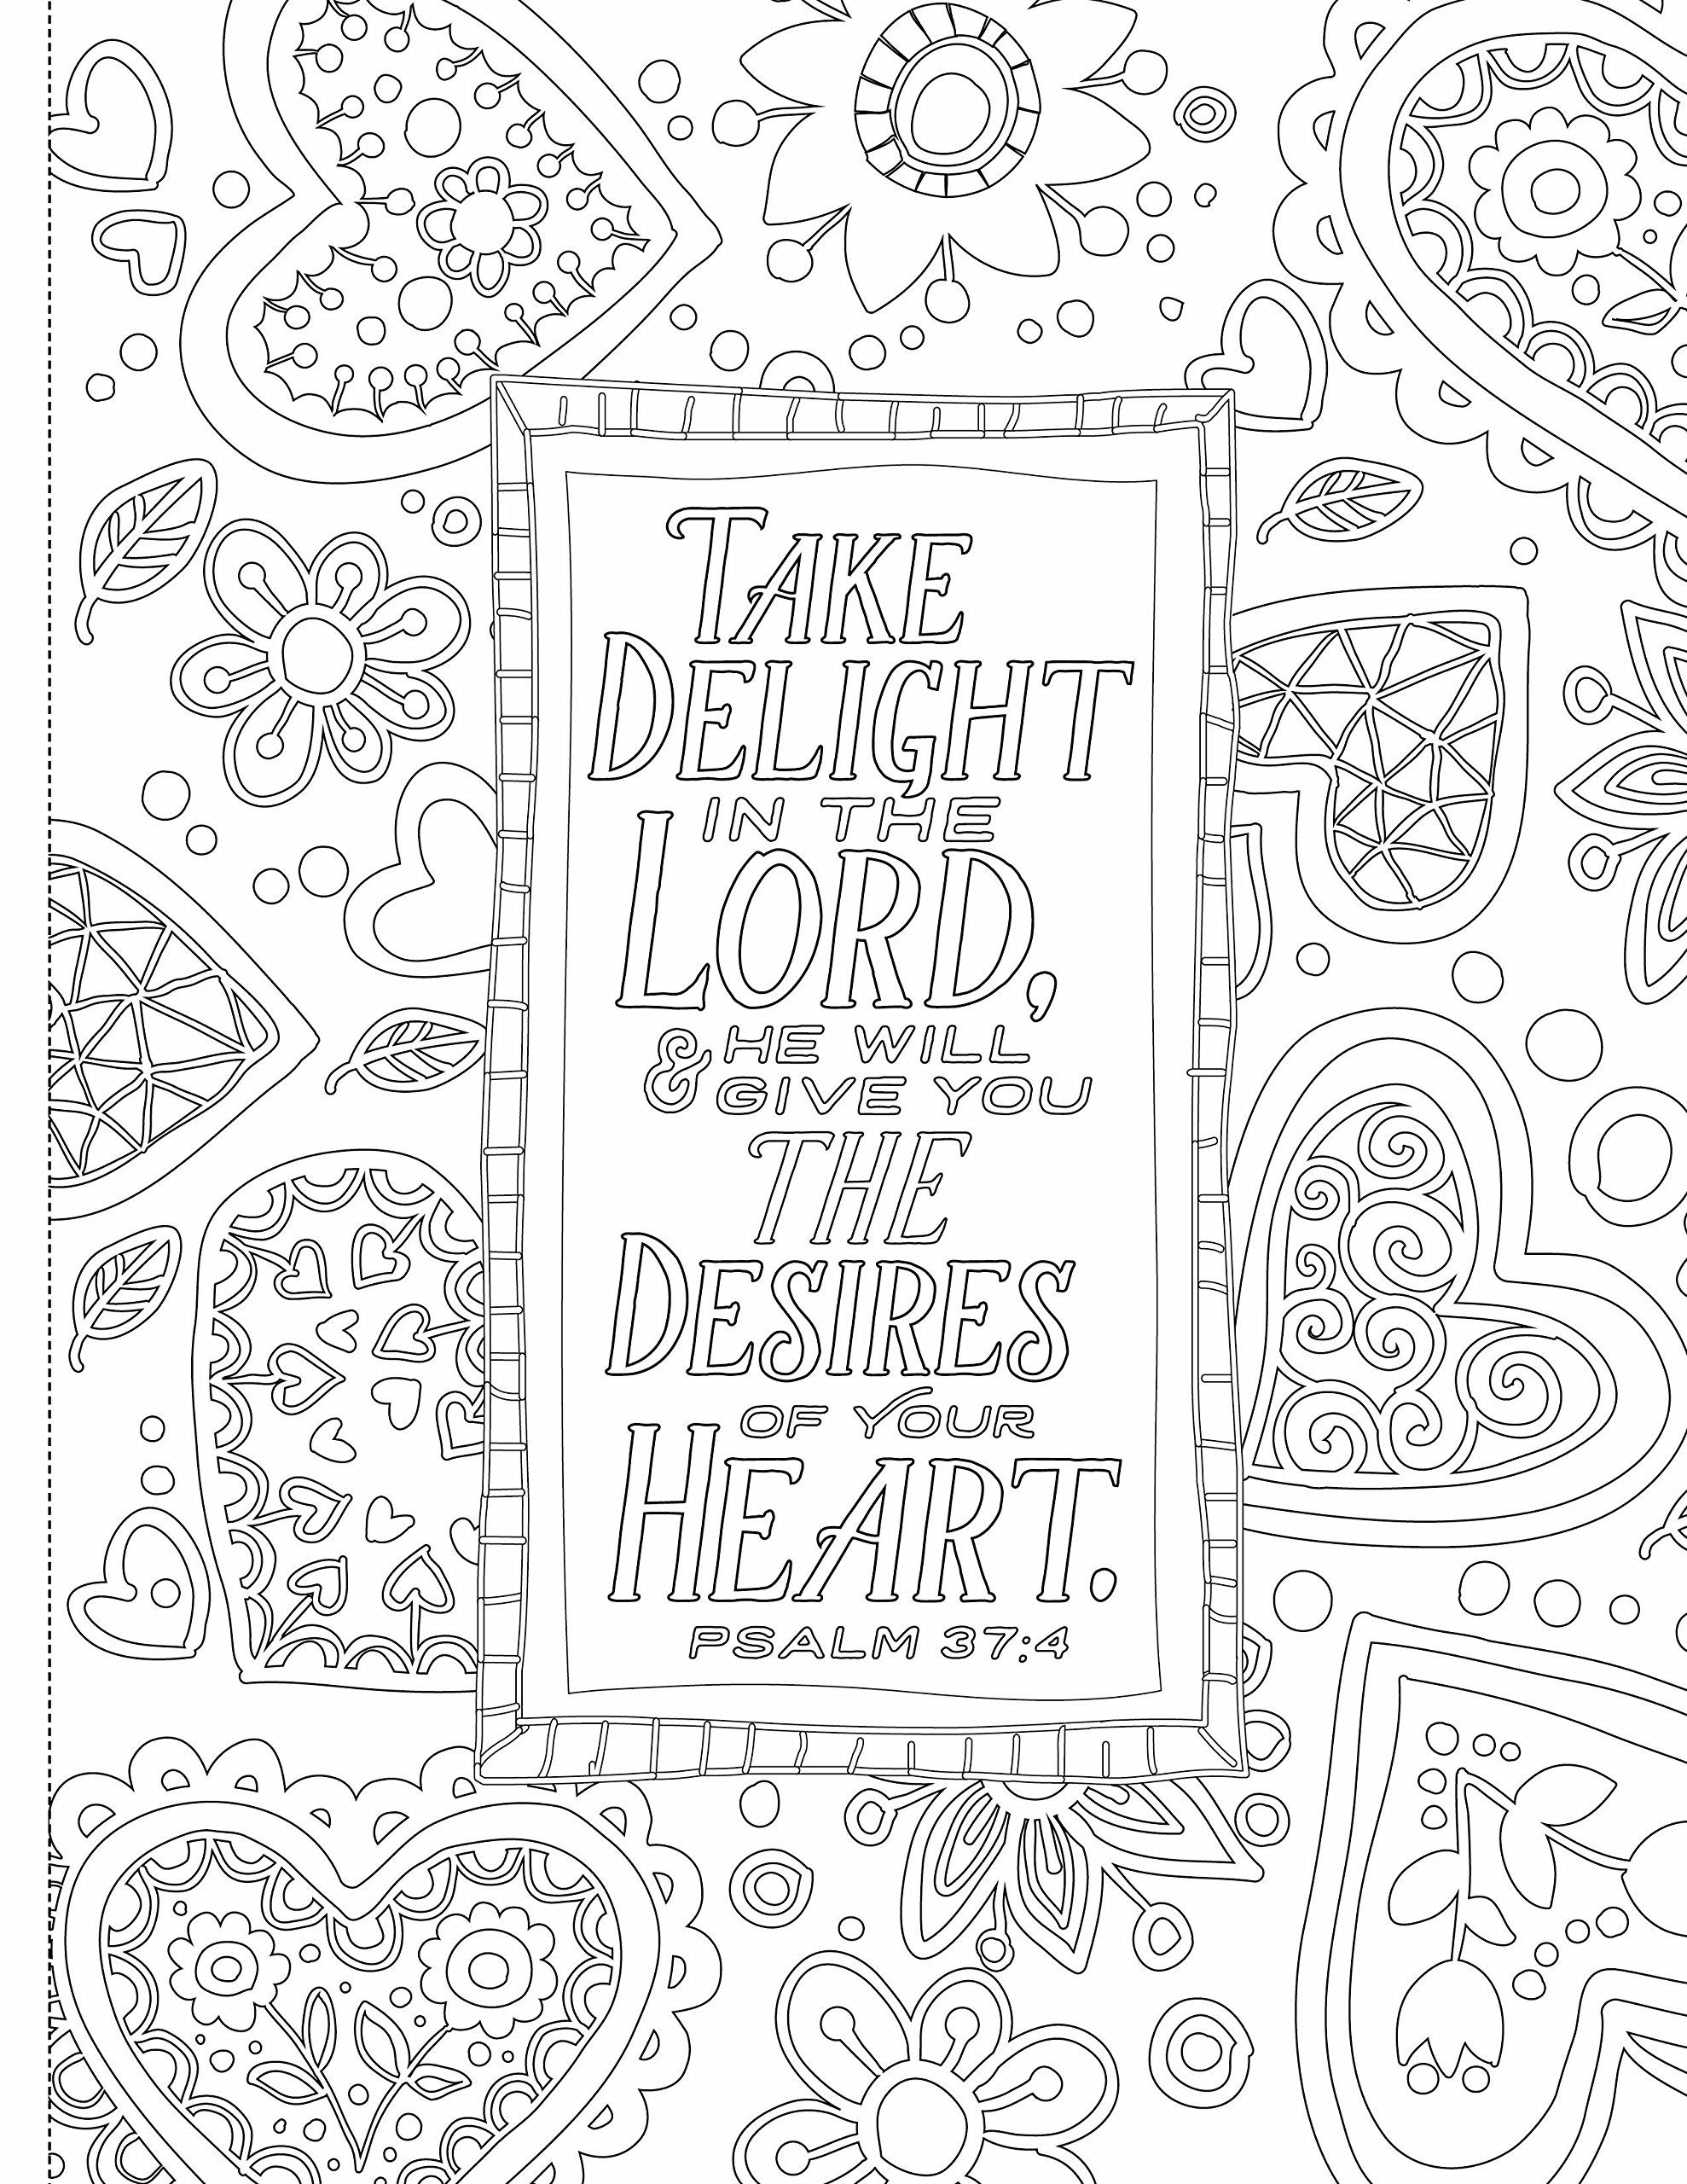 Inspiring Words 30 Verses From The Bible You Can Color Zondervan 9780310757283 Amazon Com Books Bible Verse Coloring Words Coloring Book Bible Coloring